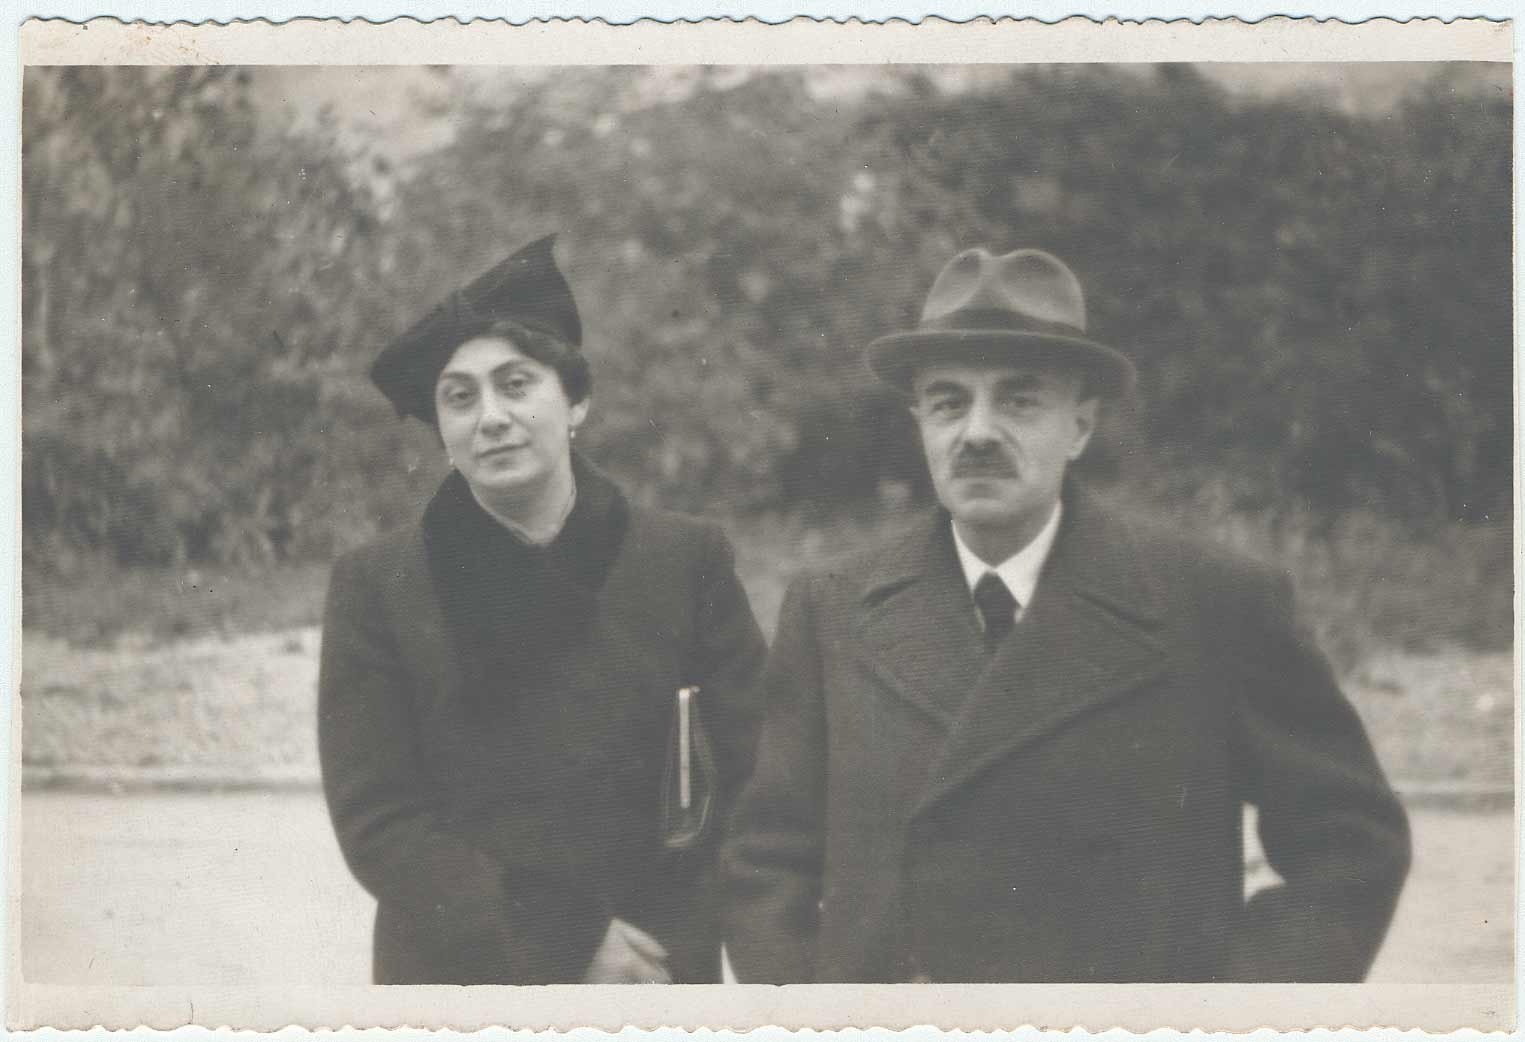 George's parents, Zdena and Otto Ehrman, in 1942 before their deportation. They never returned from the camps..